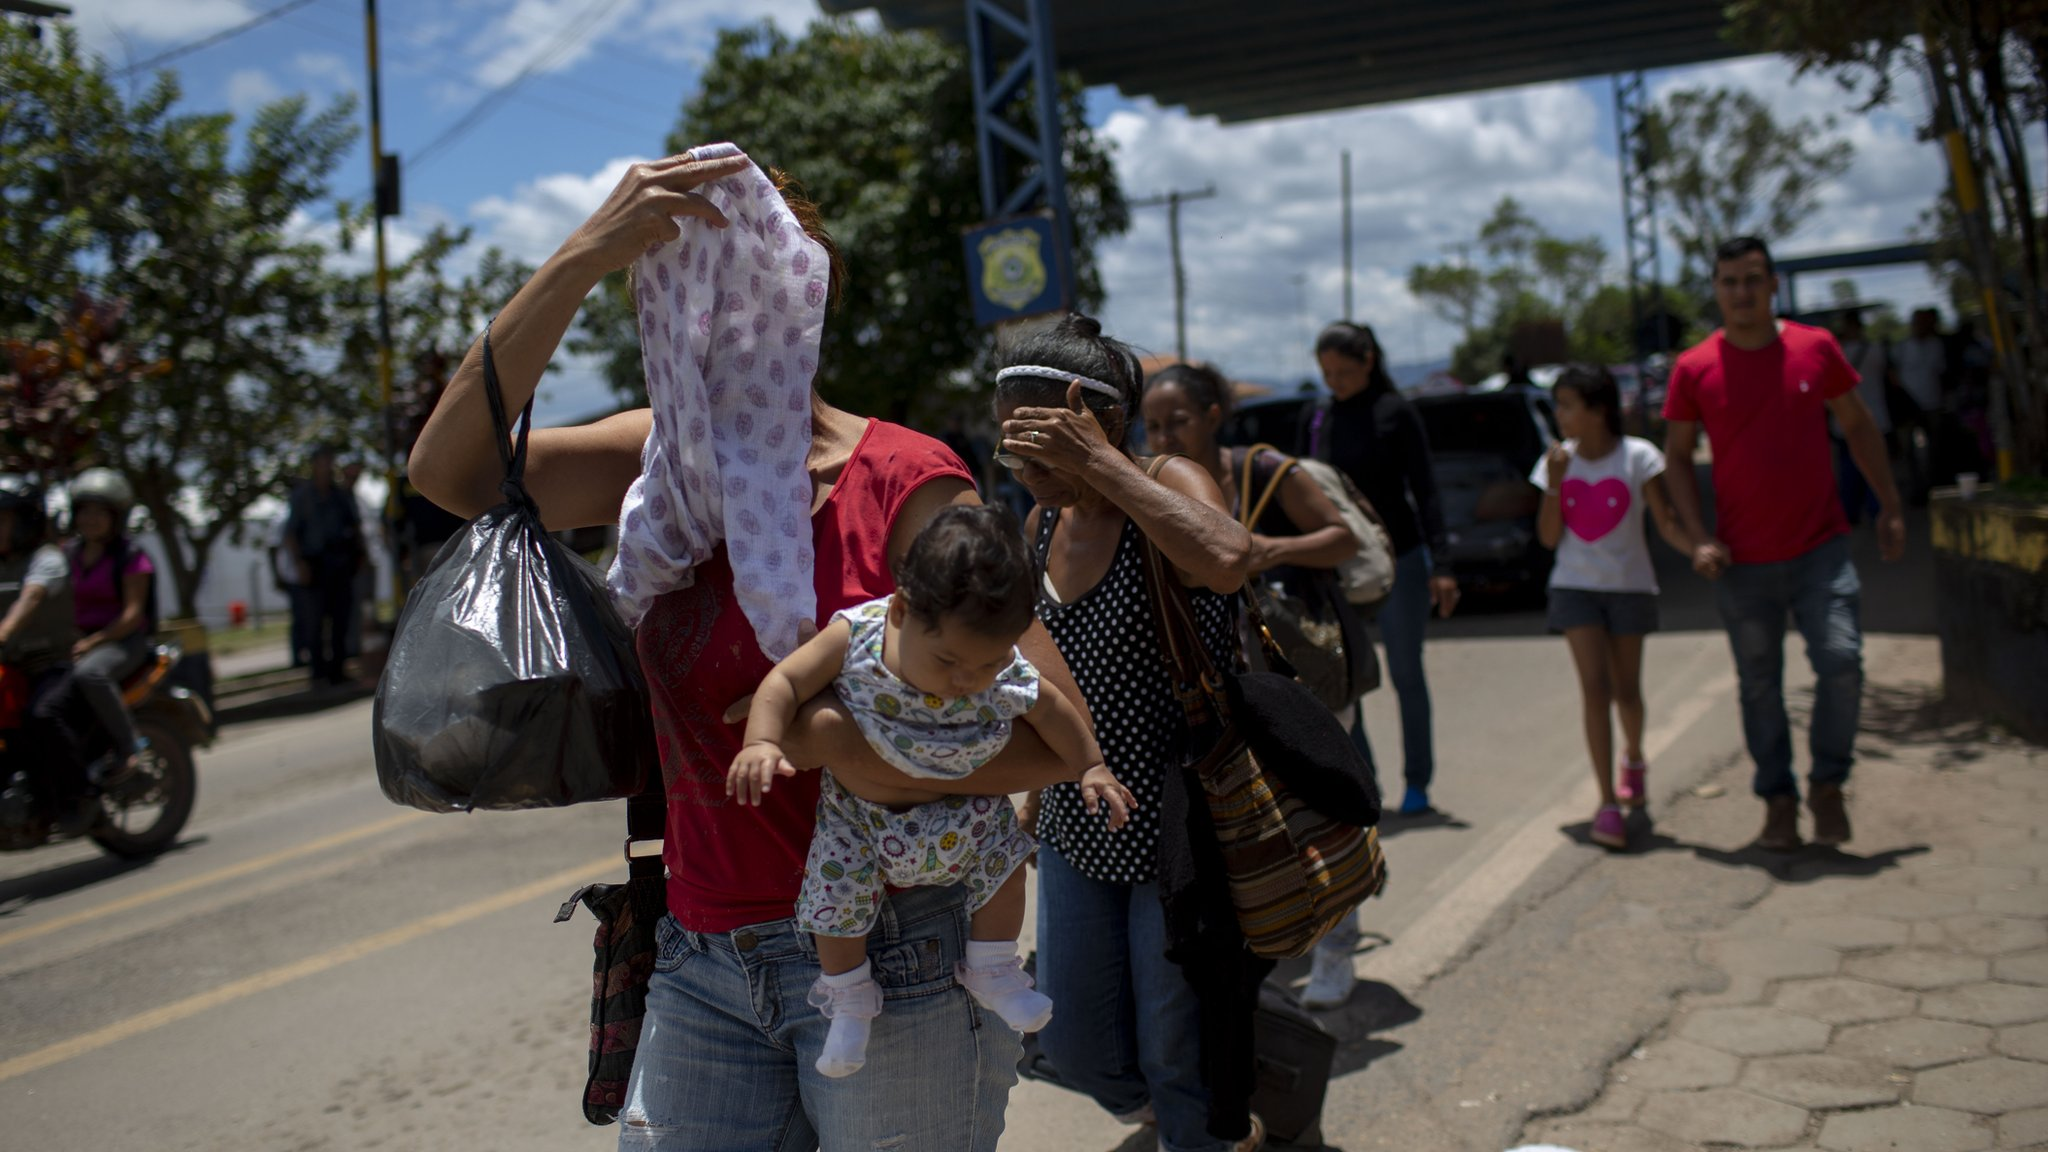 Venezuela crisis: More migrants cross into Brazil despite attacks